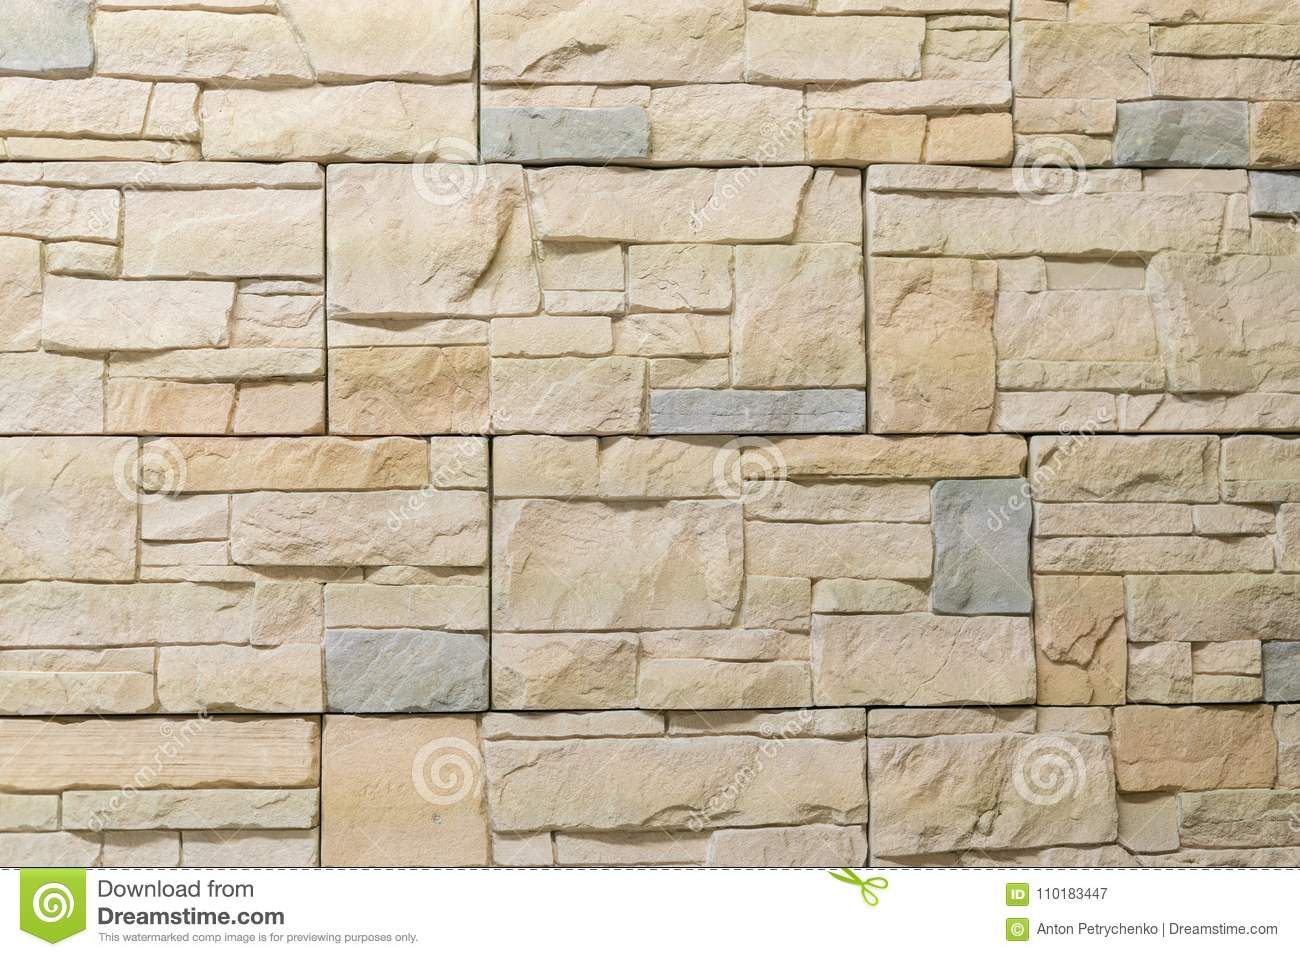 Decorative stone for decoration of the fireplace. Background